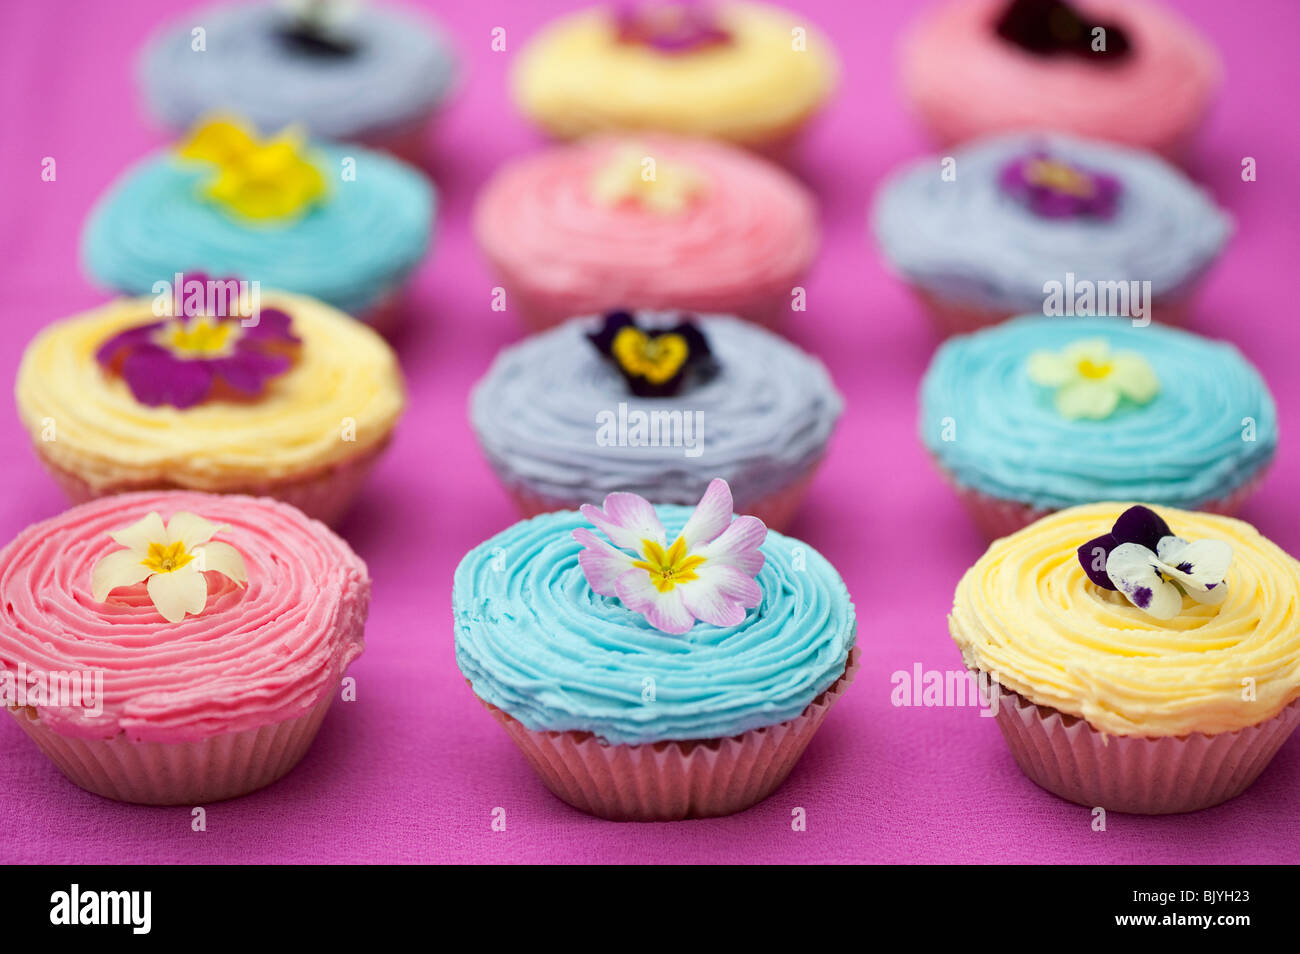 Colourful cupcakes and edible spring flowers stock photo 28880267 colourful cupcakes and edible spring flowers mightylinksfo